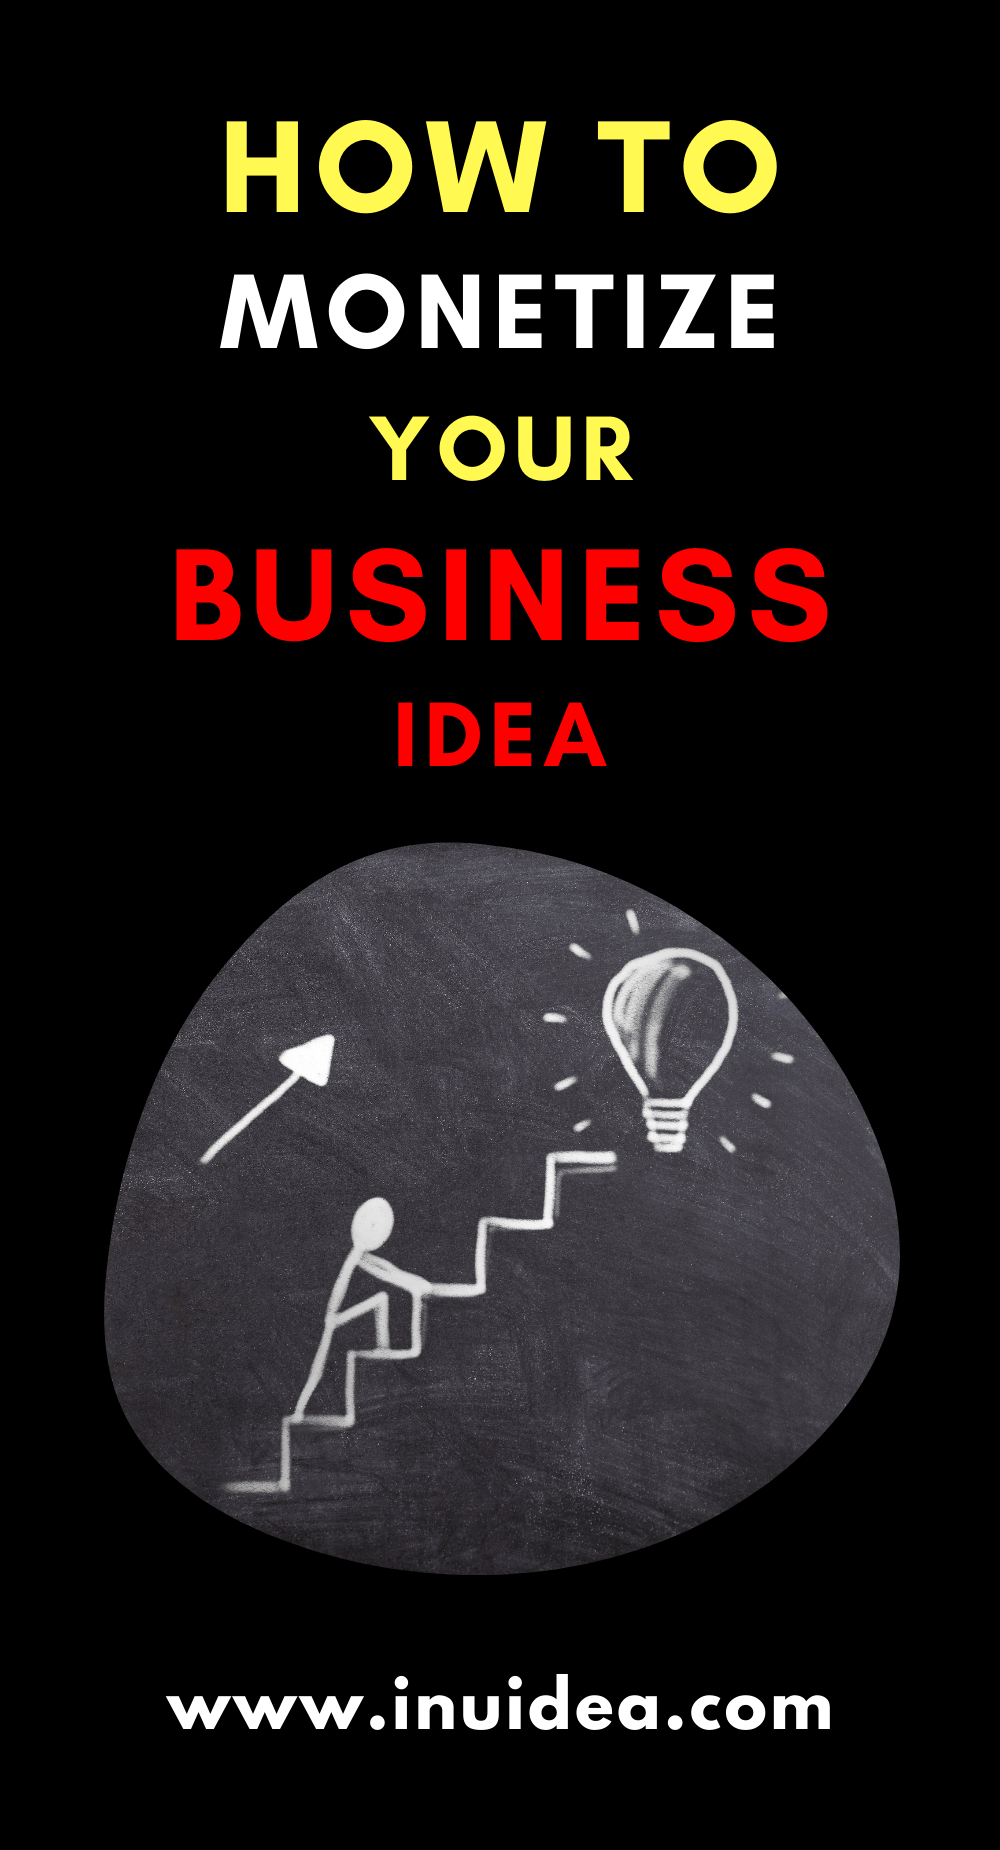 Monetize Your Business Idea